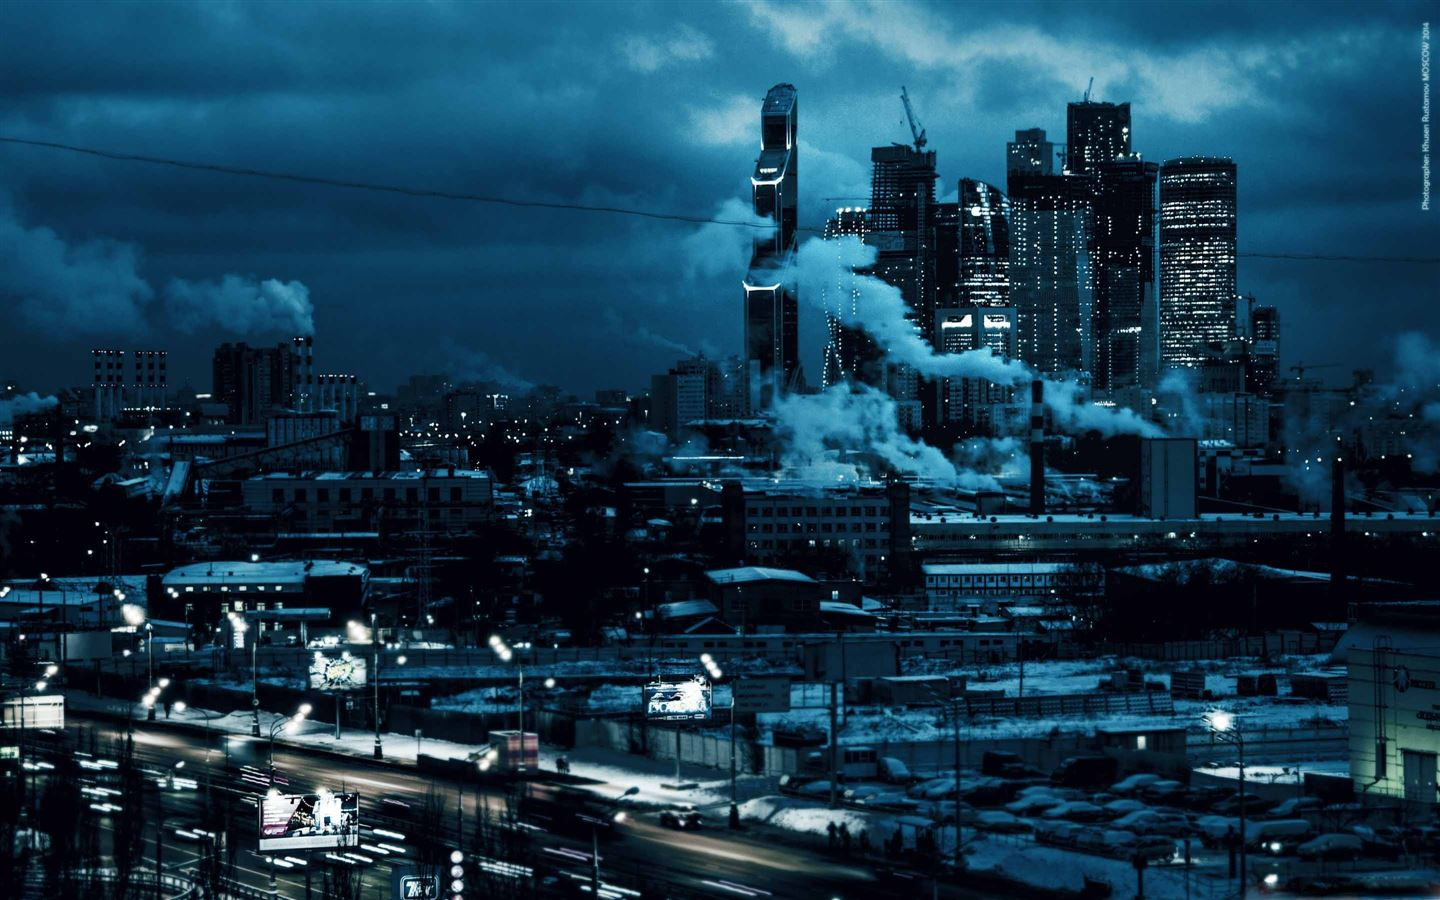 Moscow City Mac Wallpaper Download Free Mac Wallpapers Download